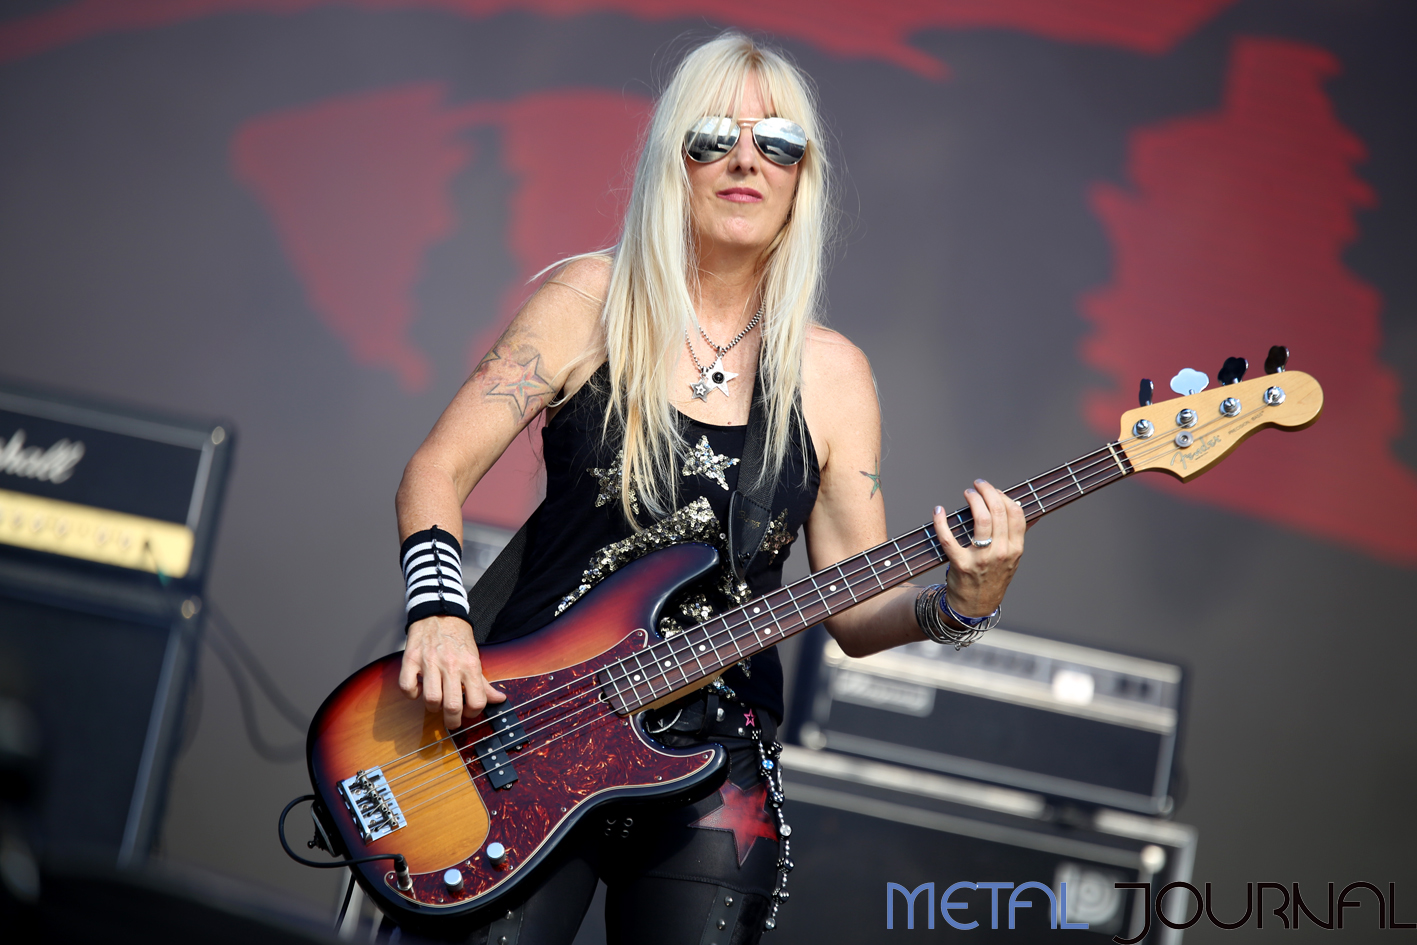 vixen rock fest 18 - metal journal pic 3